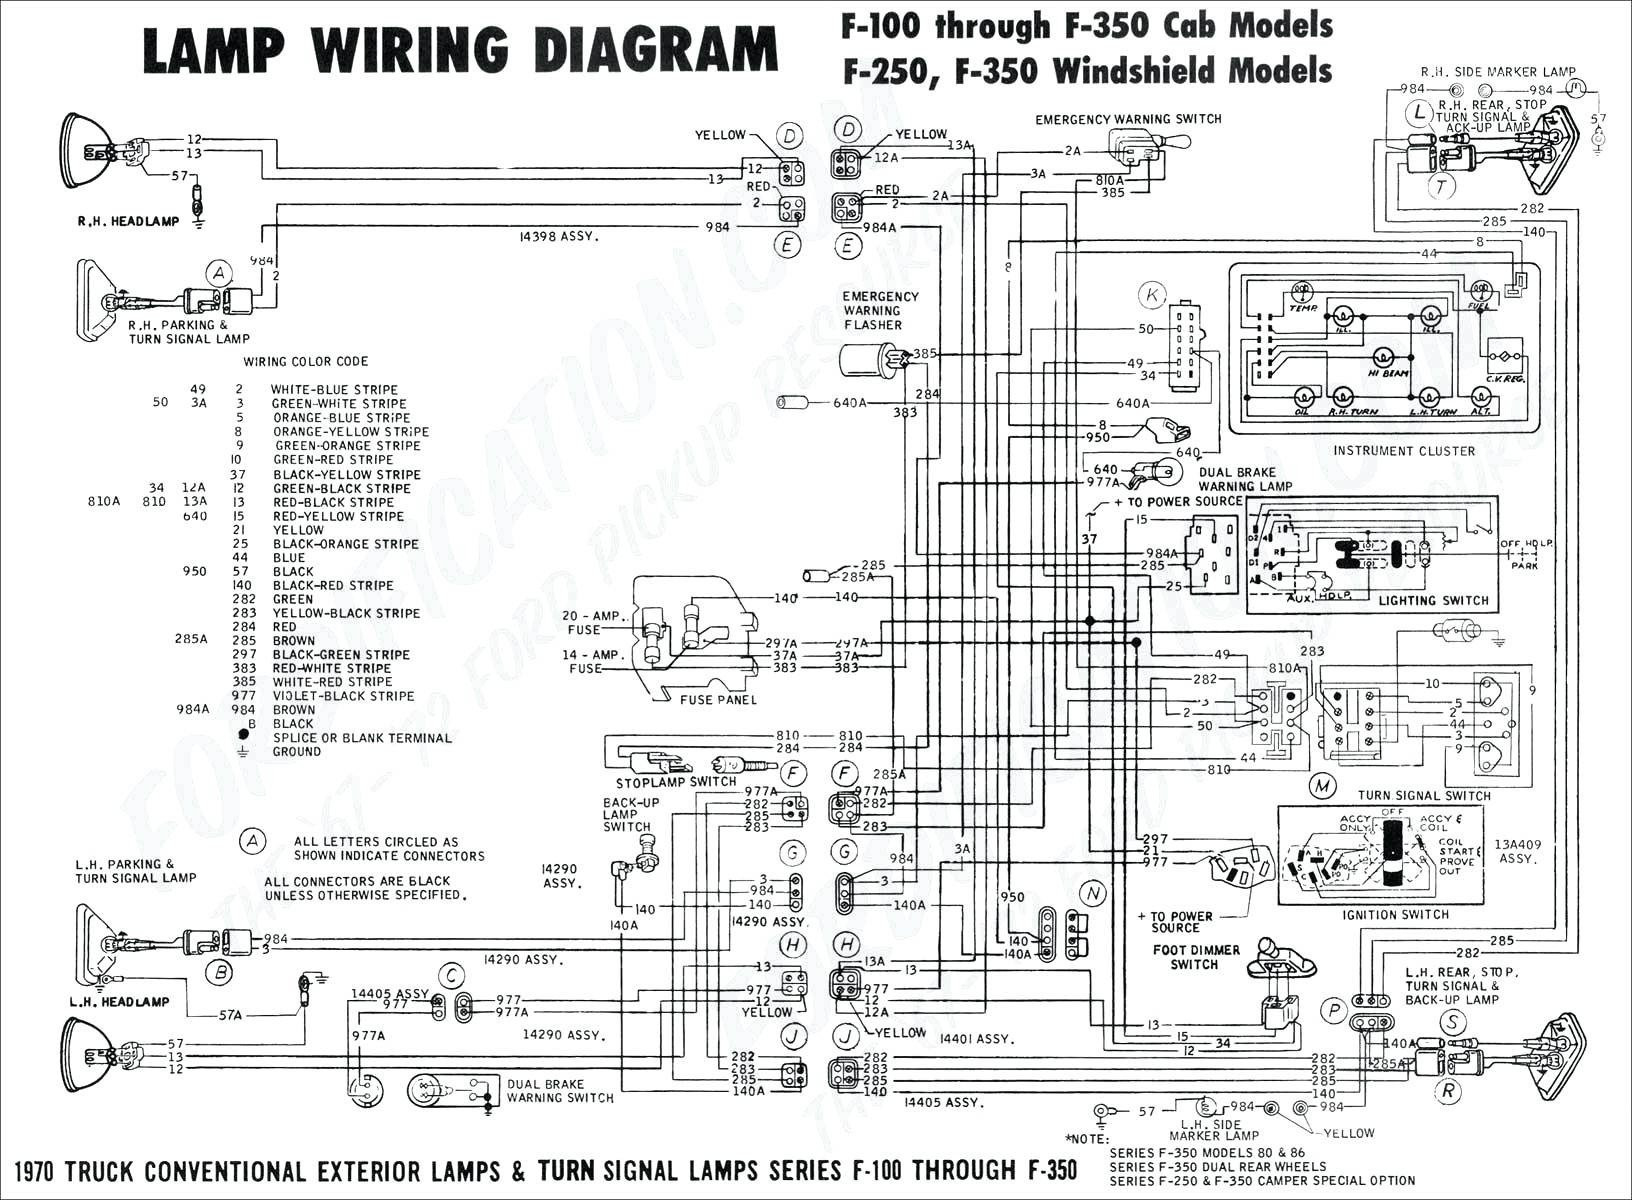 Shorelander Trailer Wiring Diagram – Simple Wiring Diagram - Shorelander Trailer Lights Wiring Diagram